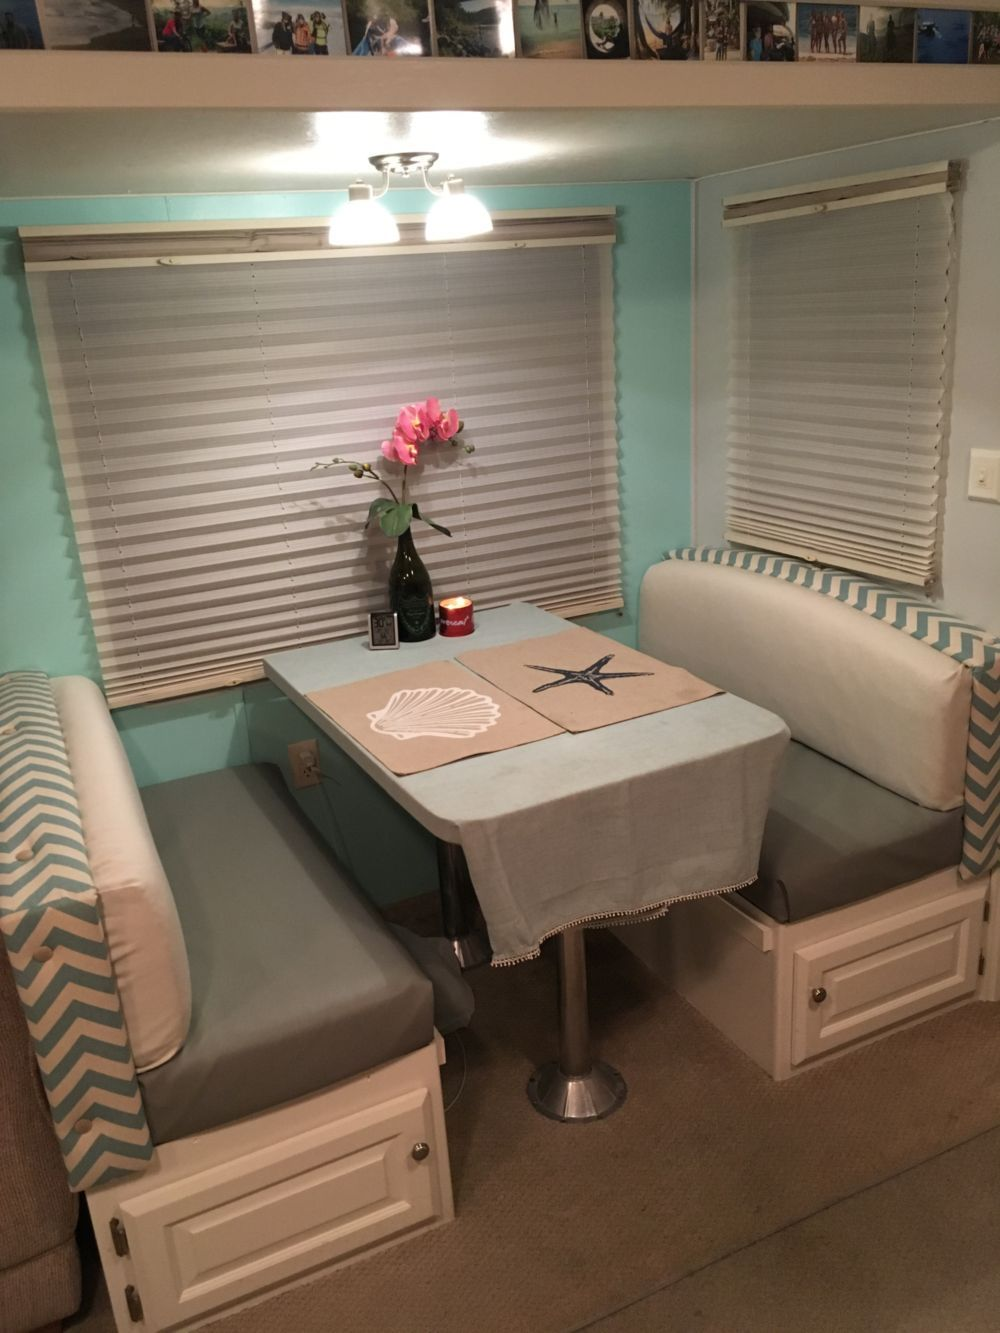 Awesome excellent ideas to decorating rv interior https cooarchitecture also pin by kelly smith on gypsy living pinterest remodeled campers rh